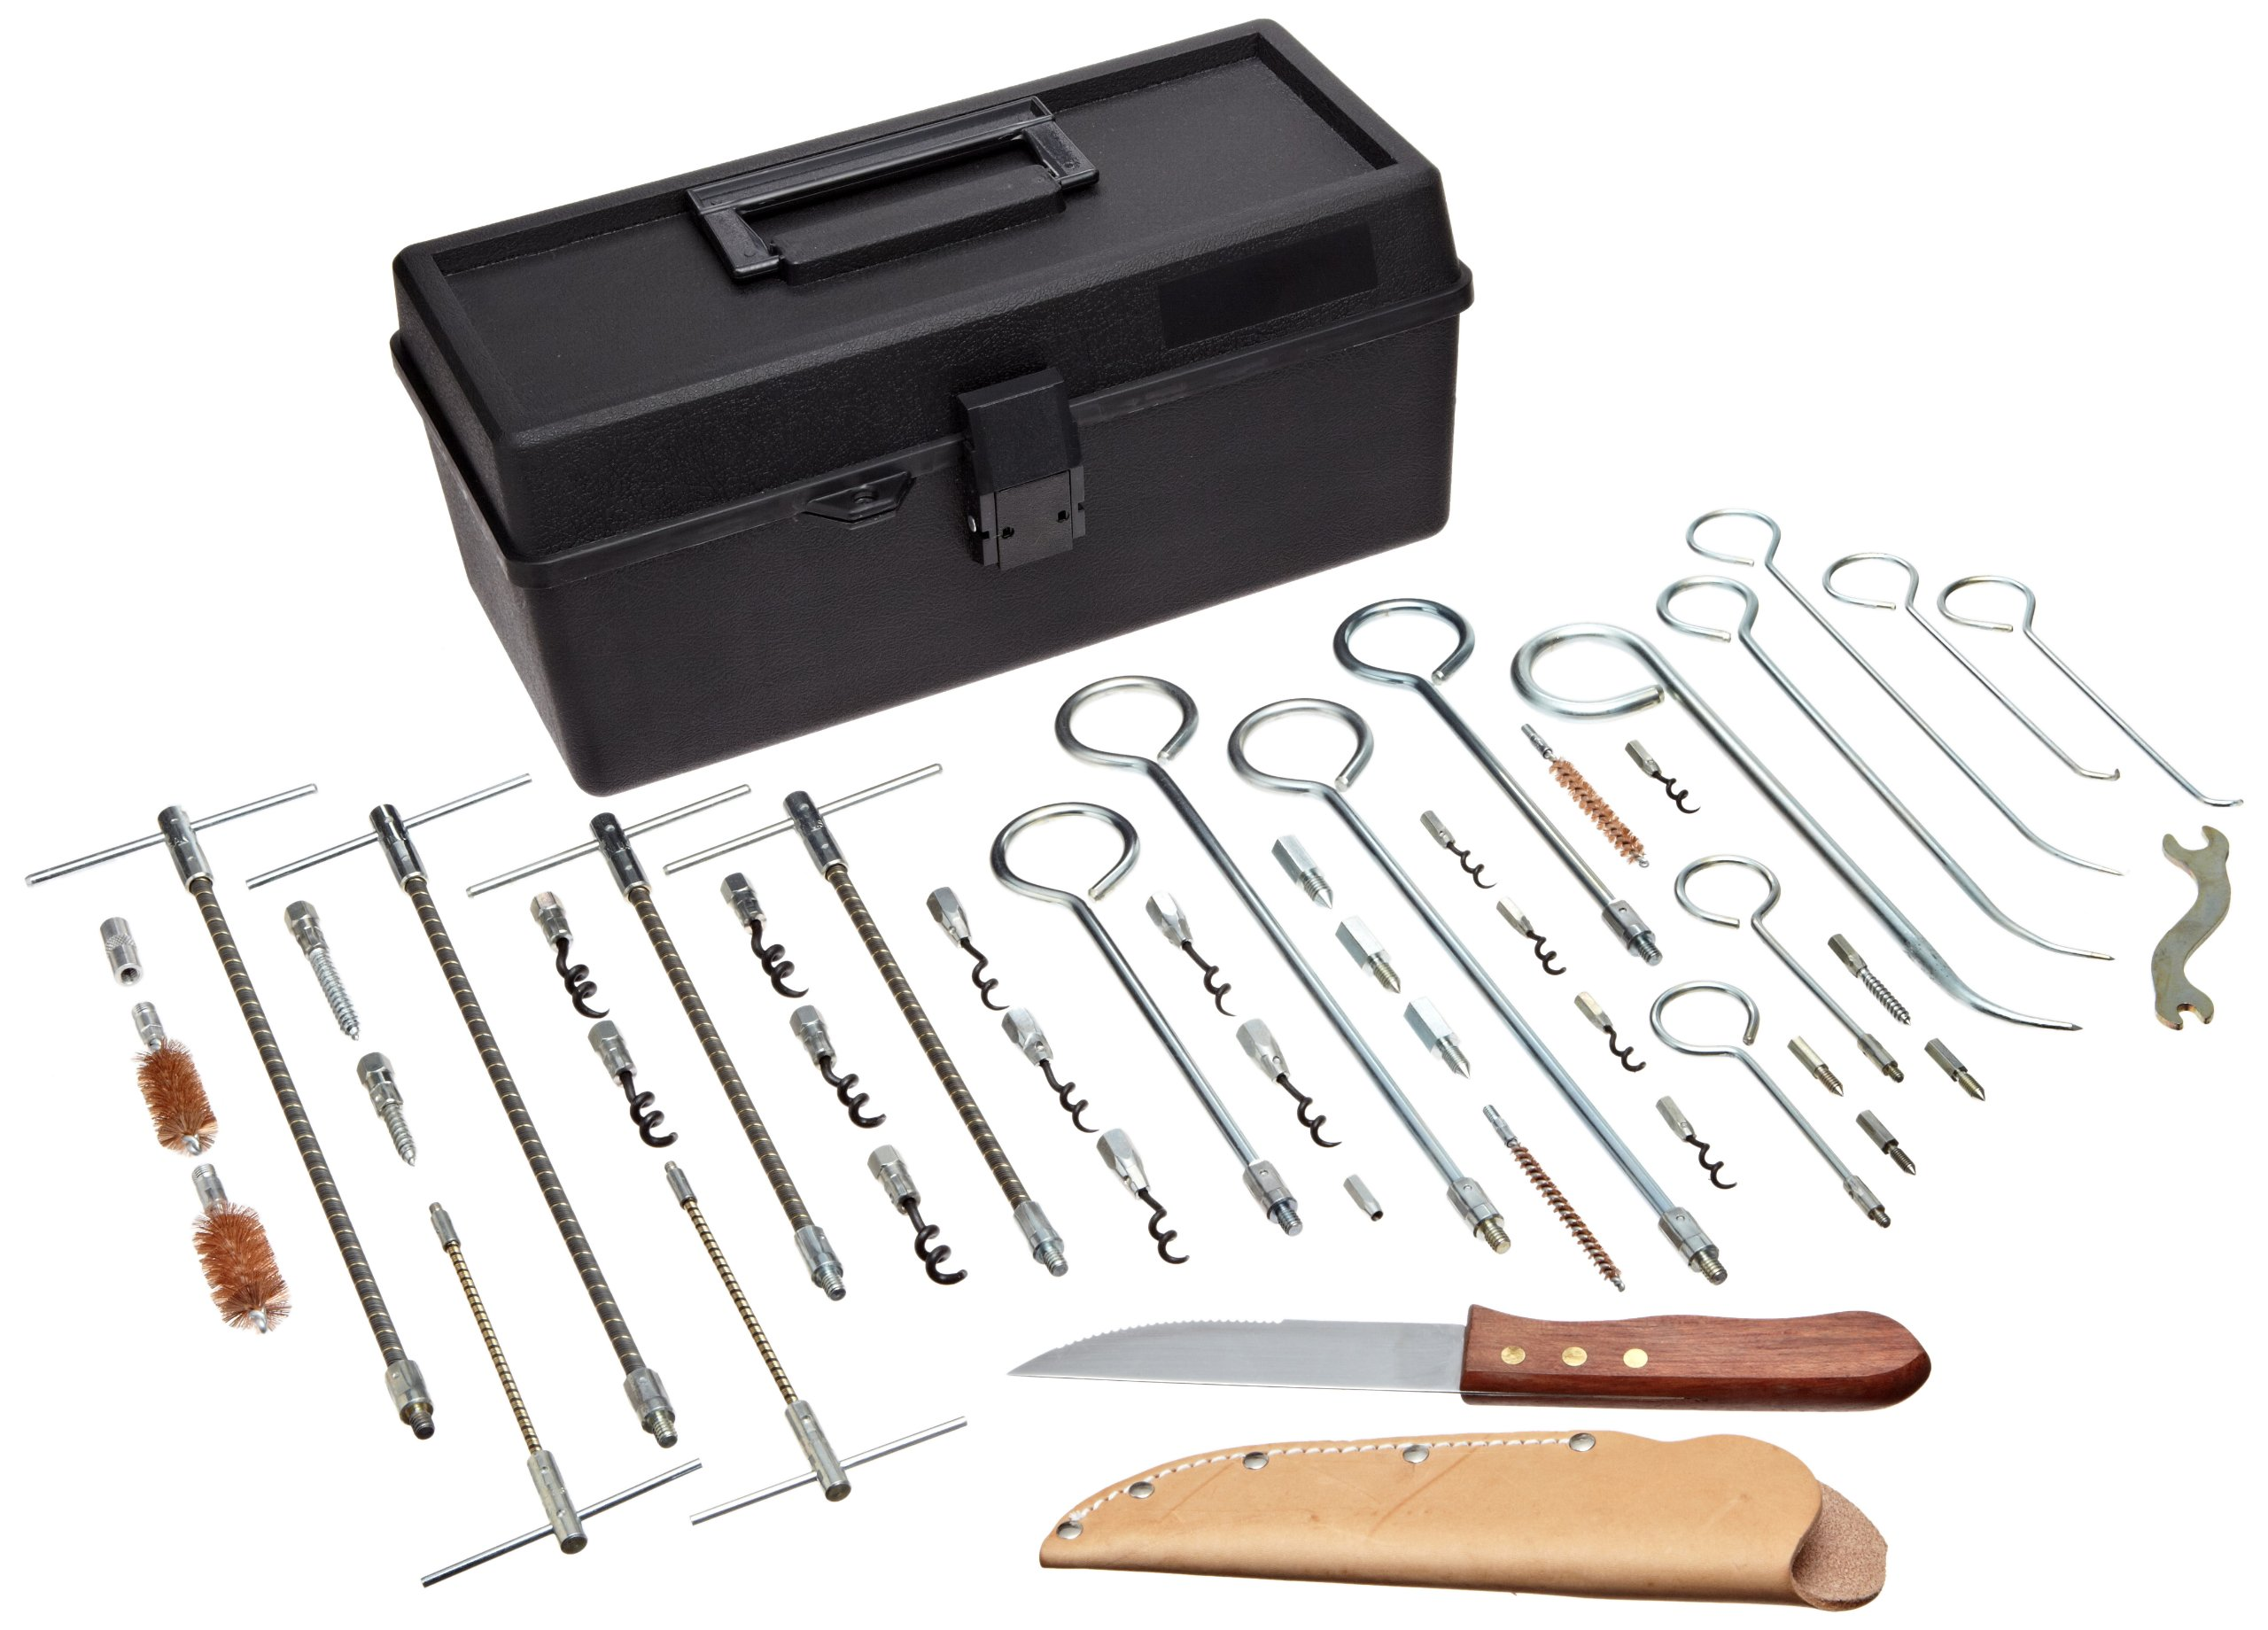 Palmetto 1133 Packing Extractor Tool Kit, Includes: (2) 1101 Flexible extractors with tips, (2) 1102, (2) 1103, (2) S1 Stiff extractors, (2) S2, (2) S3, (1) 1113 Solid Shaft Extractors, (1) 1114, (1) 1115, (2) O-Ring Extractor, (5) 1107 Cork screw tips, (